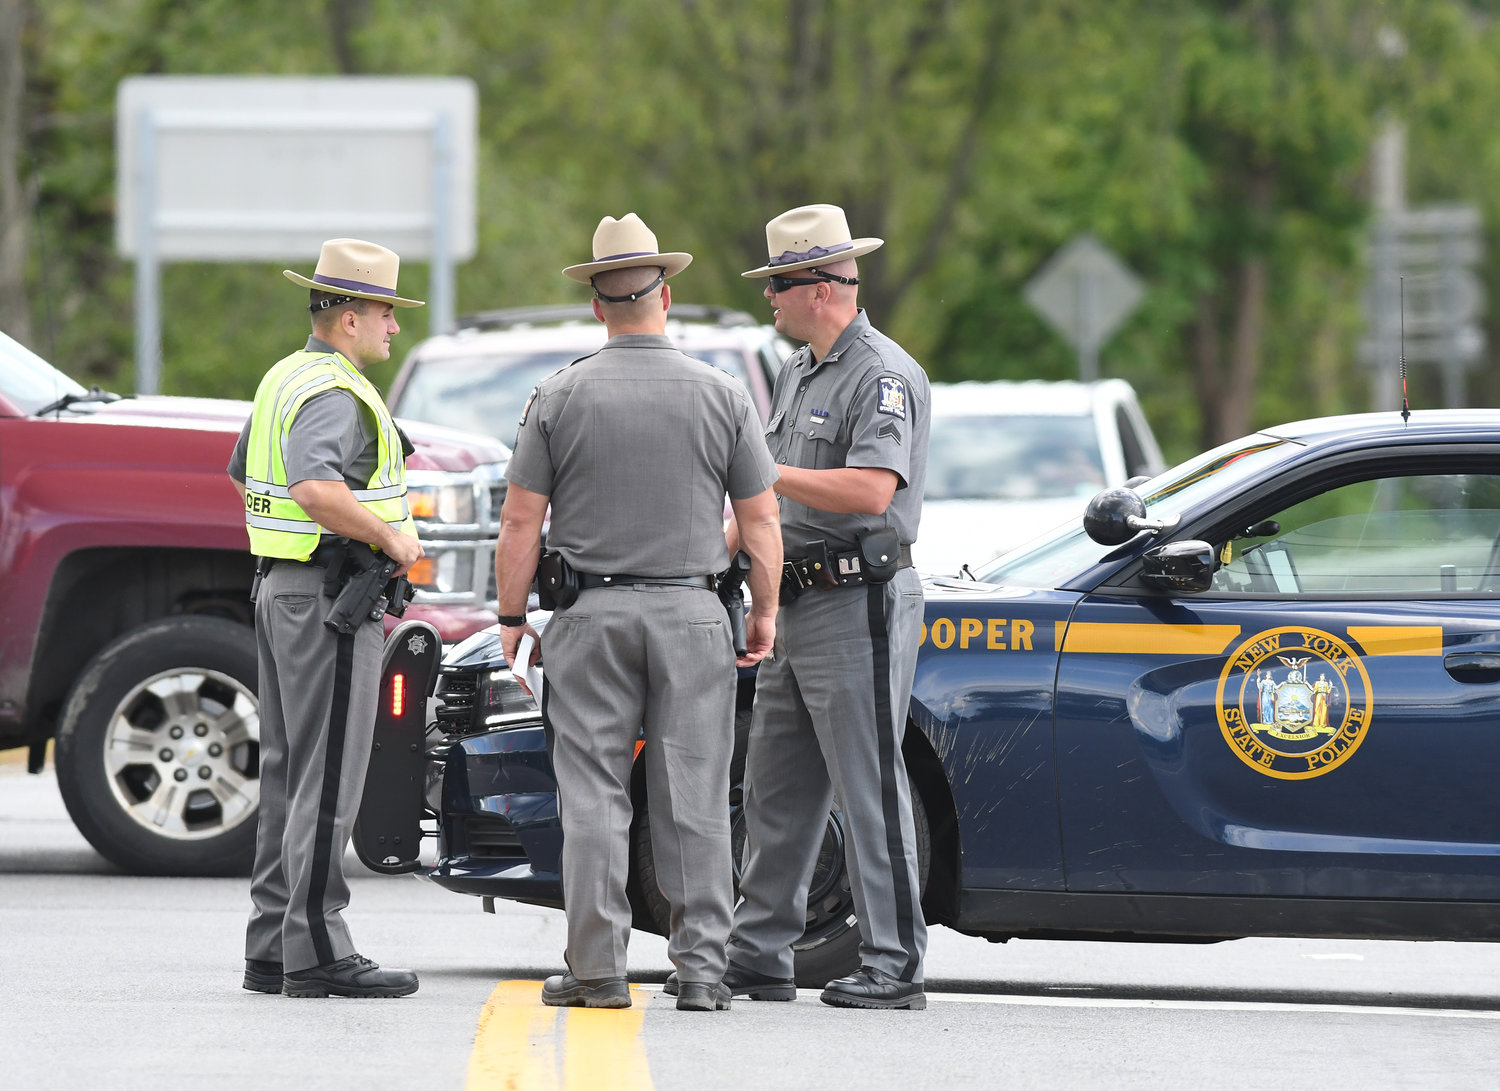 ROAD CLOSED — Three state troopers closed off Route 46 at the intersection with Route 31 during a nearby stand-off Friday afternoon.